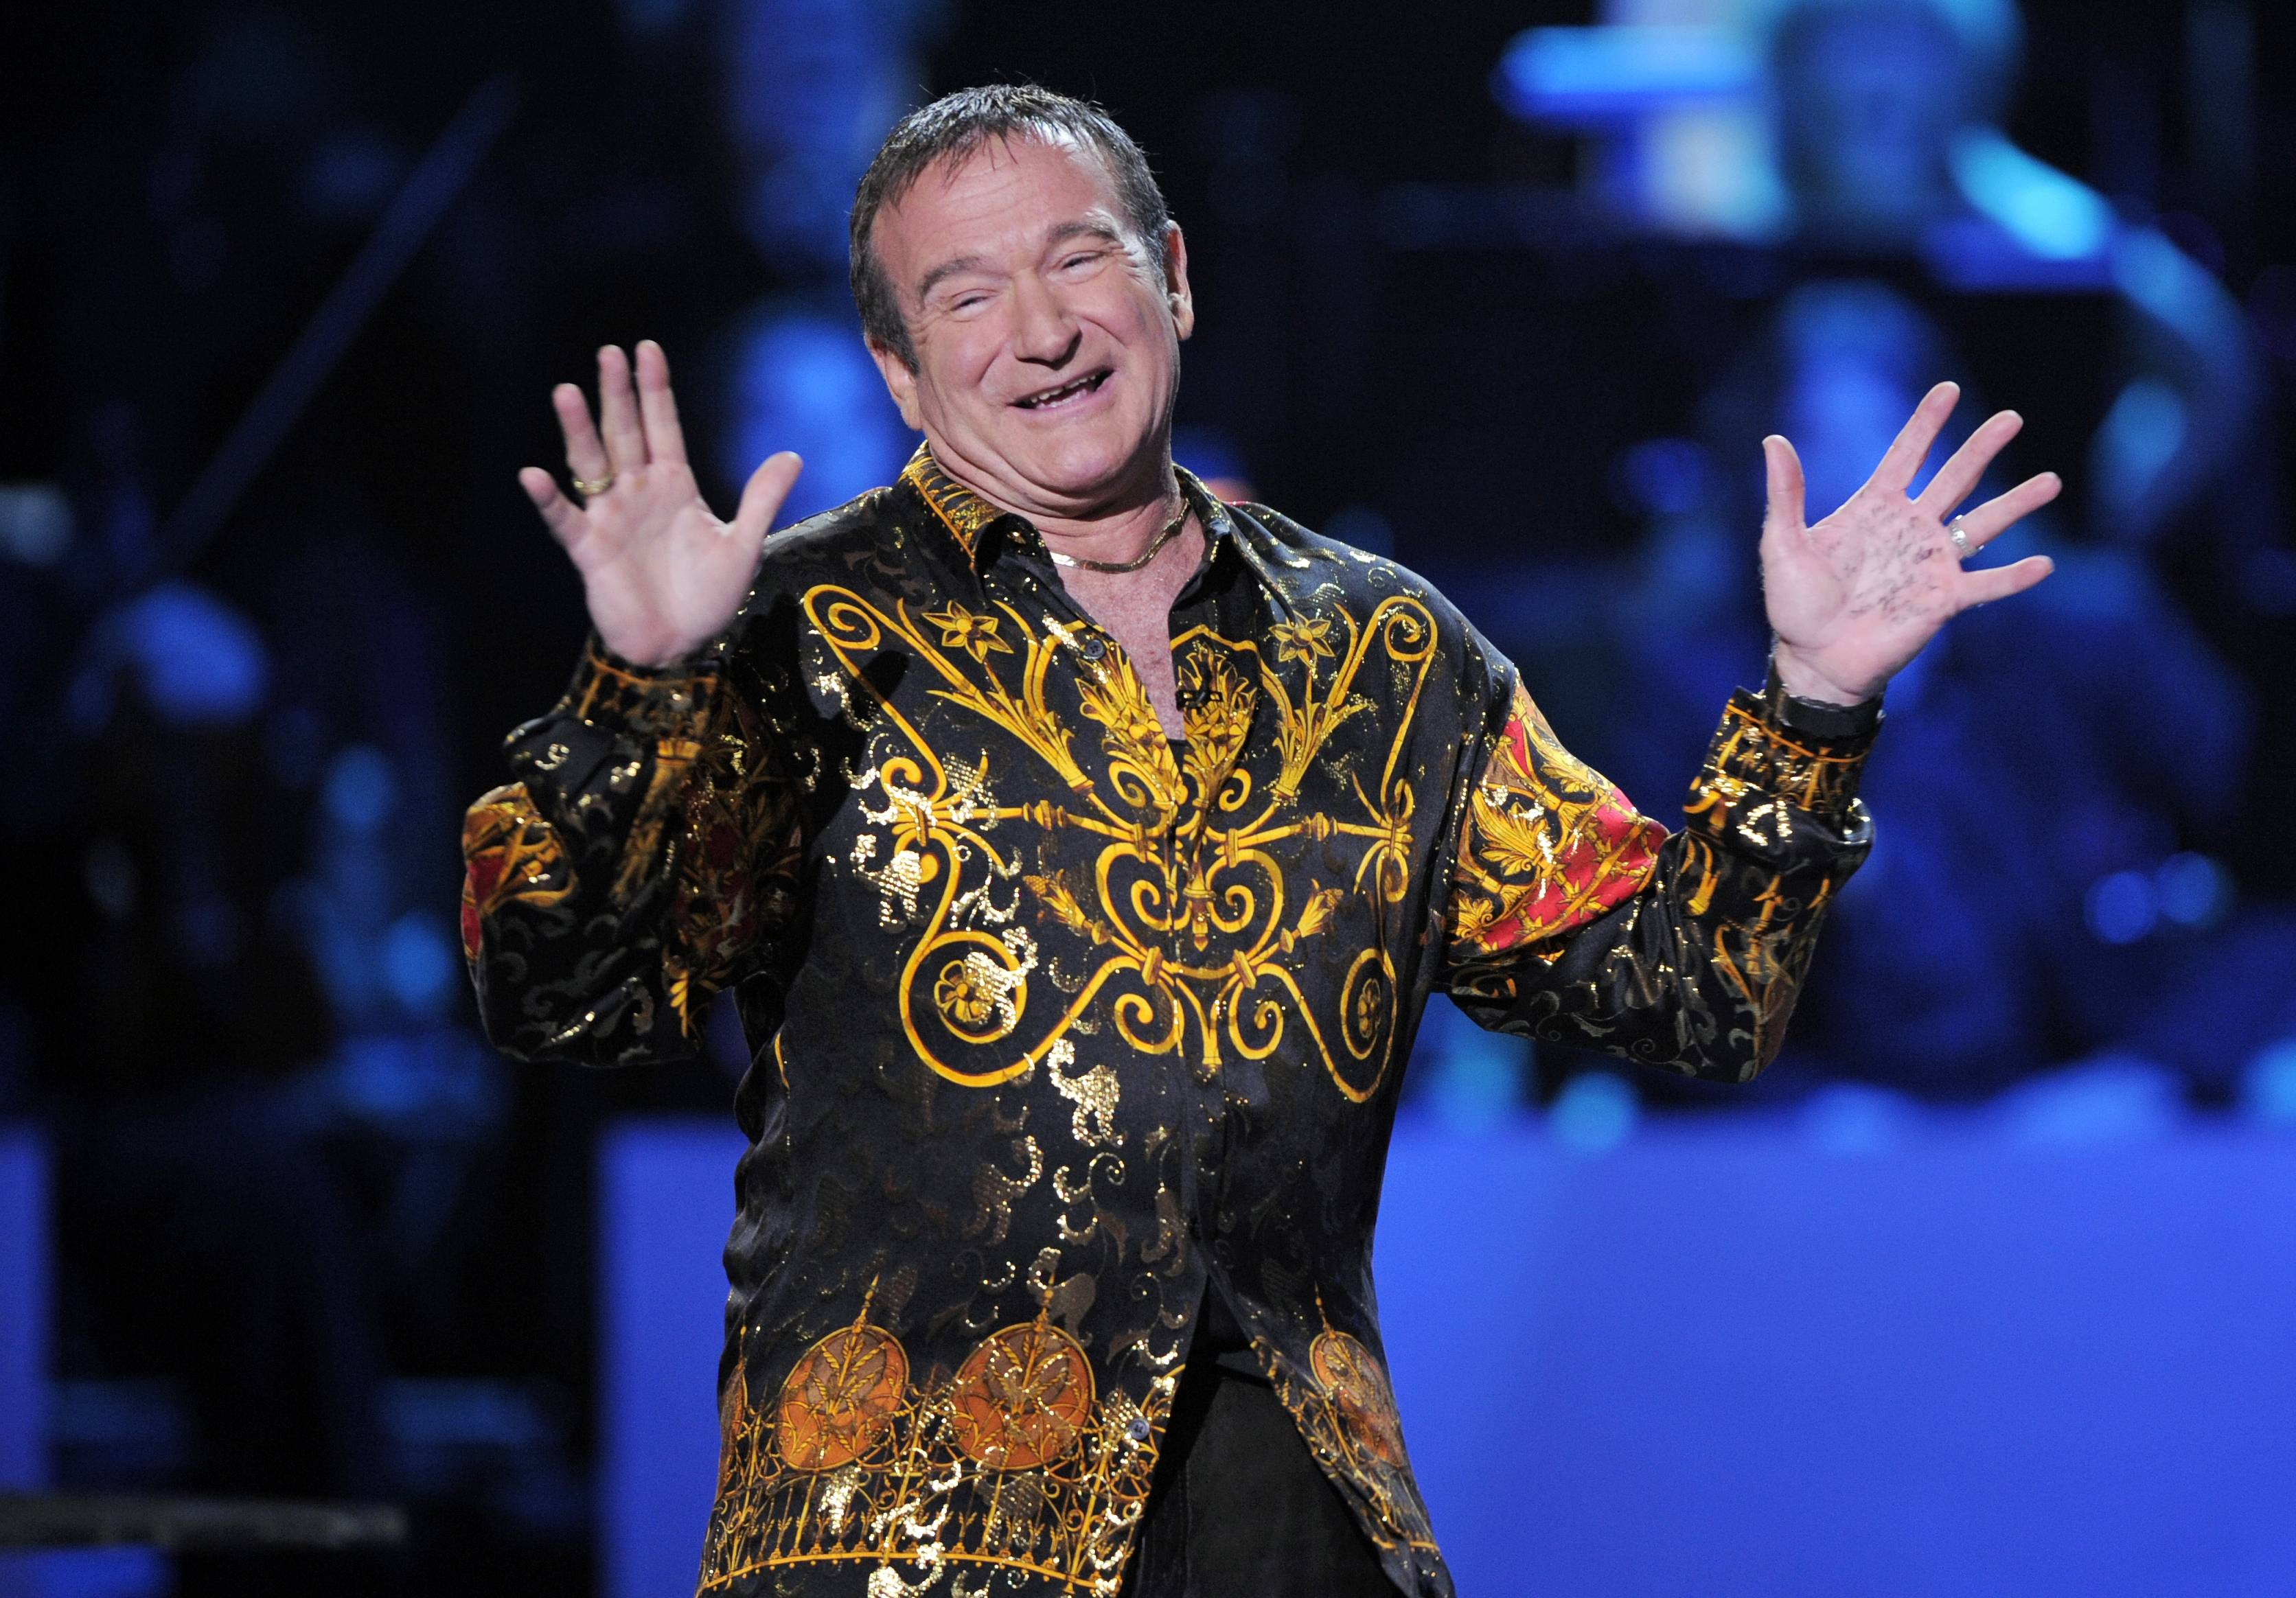 Was Robin Williams' humor a symptom of his disease?